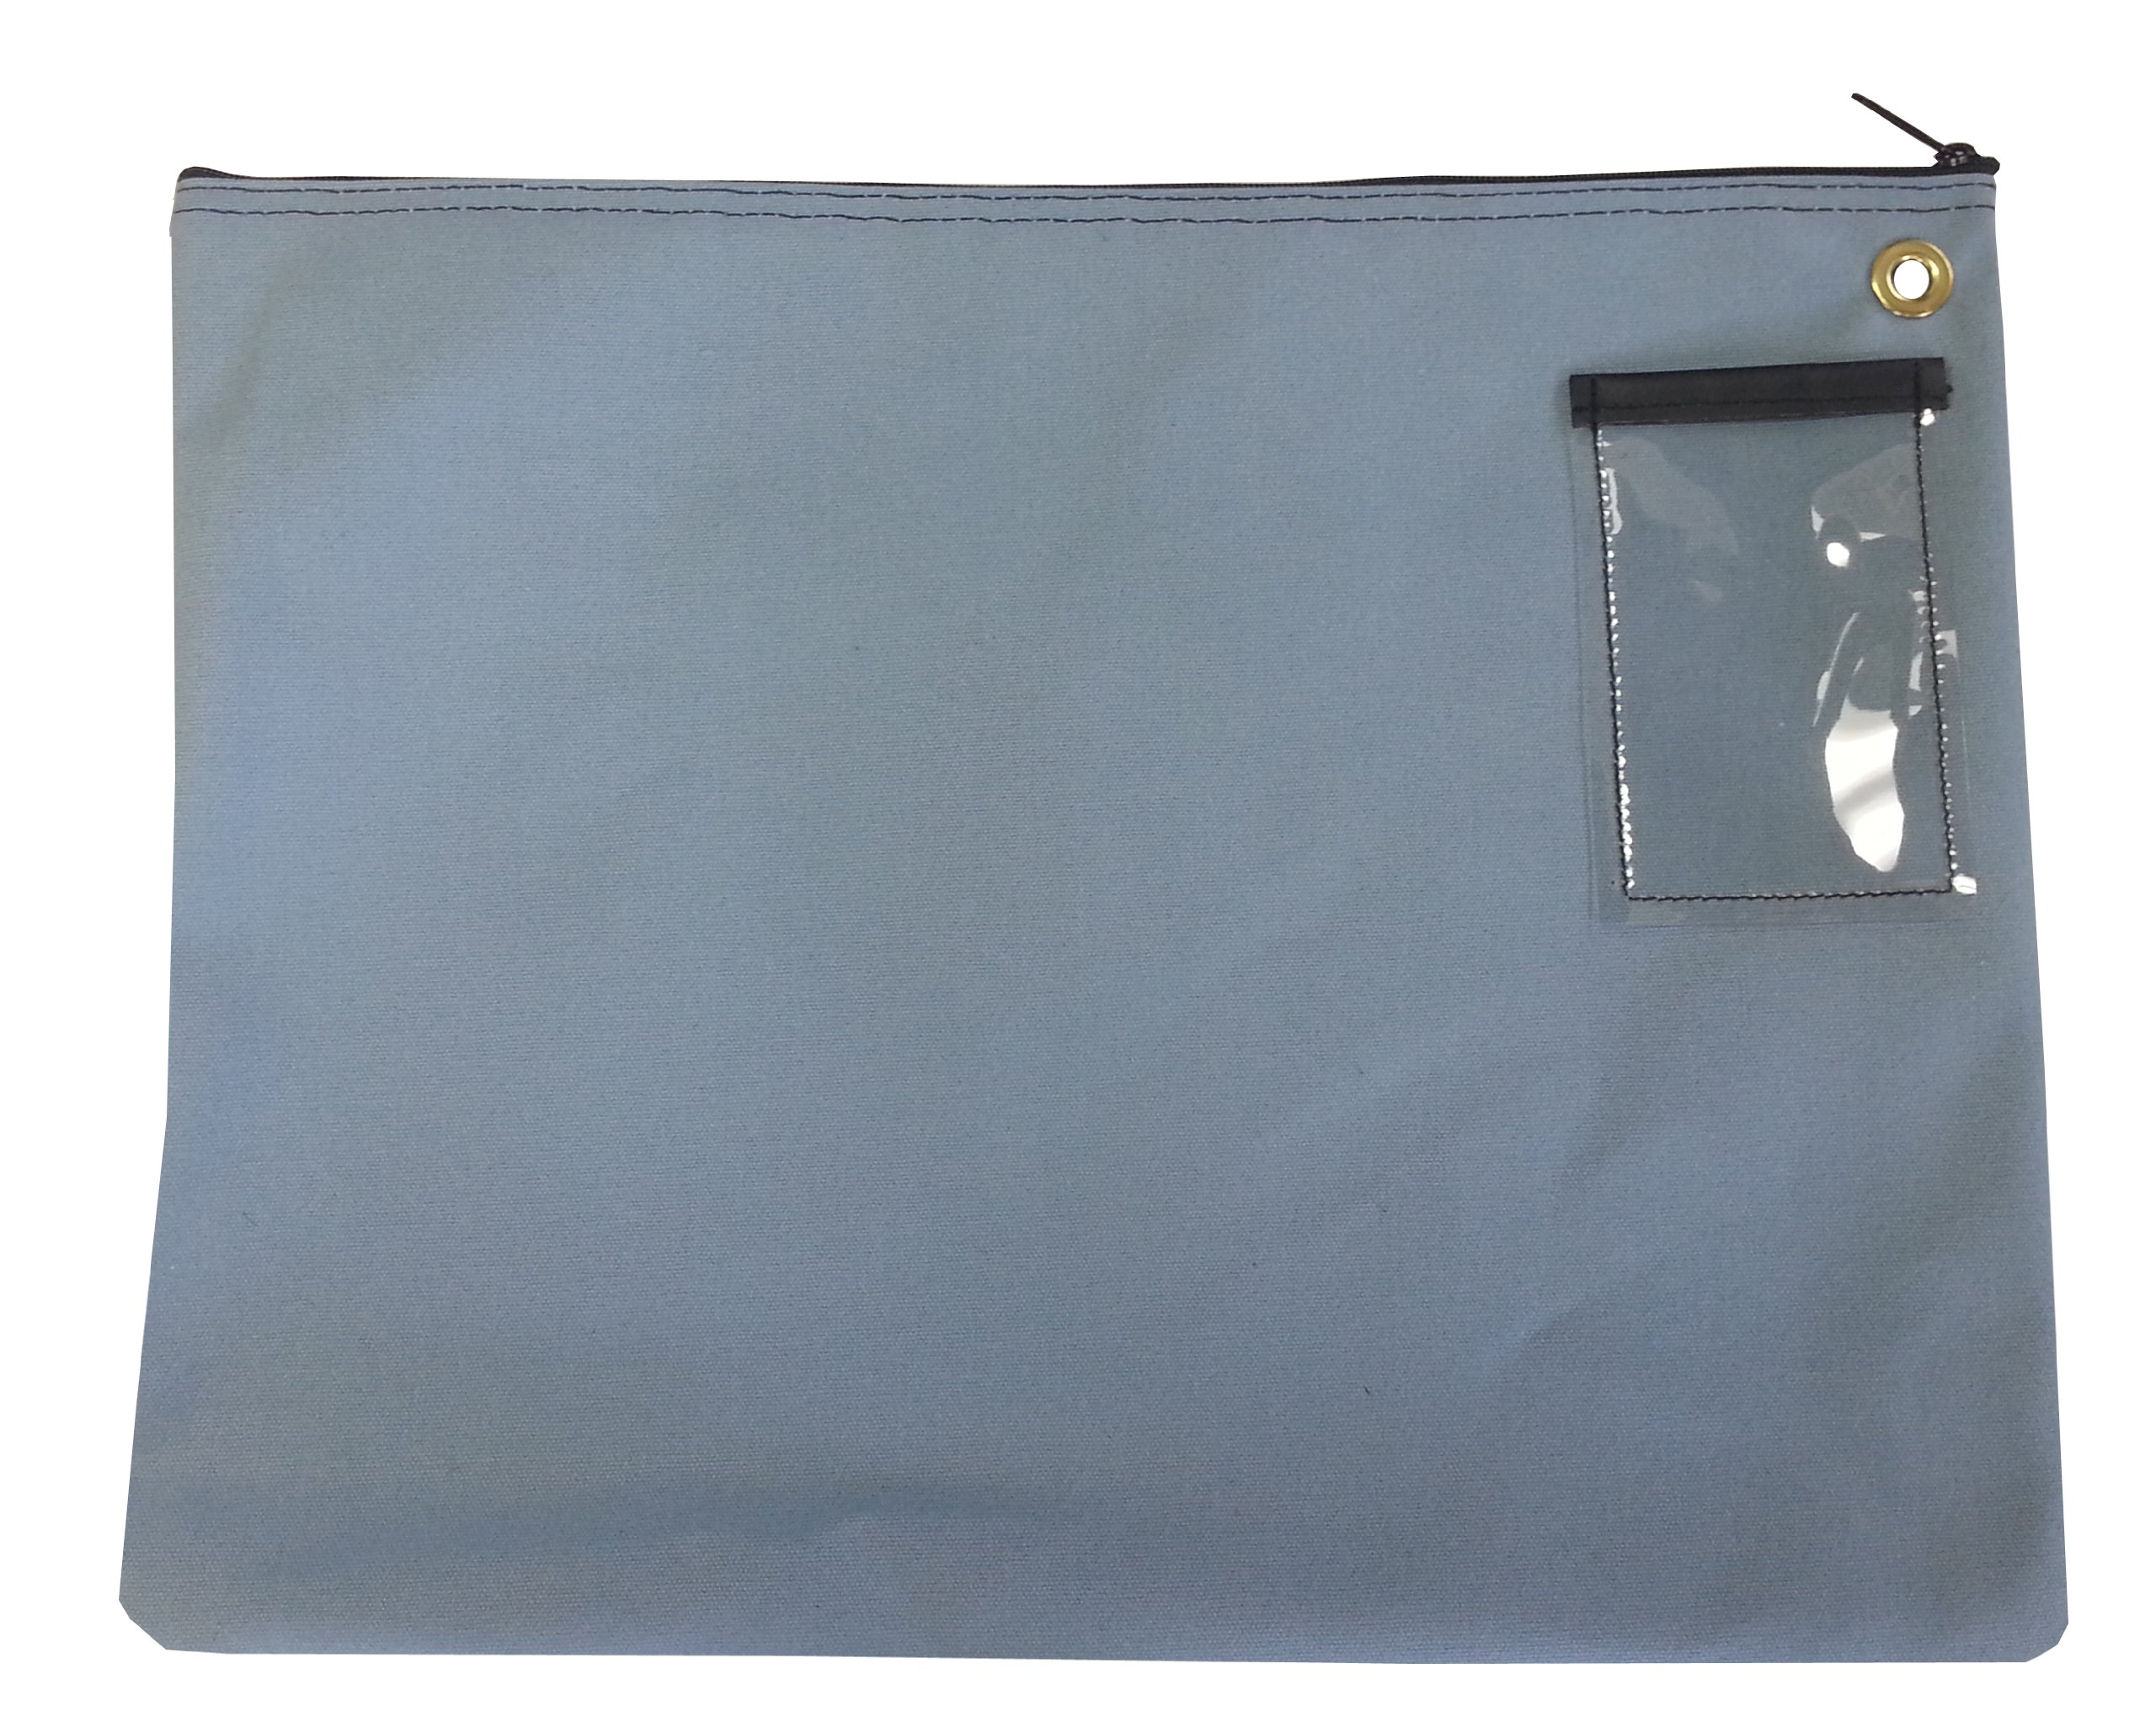 Interoffice Mailer Canvas Transit Sack Zipper Bag 18w x 14w Gray/Blue